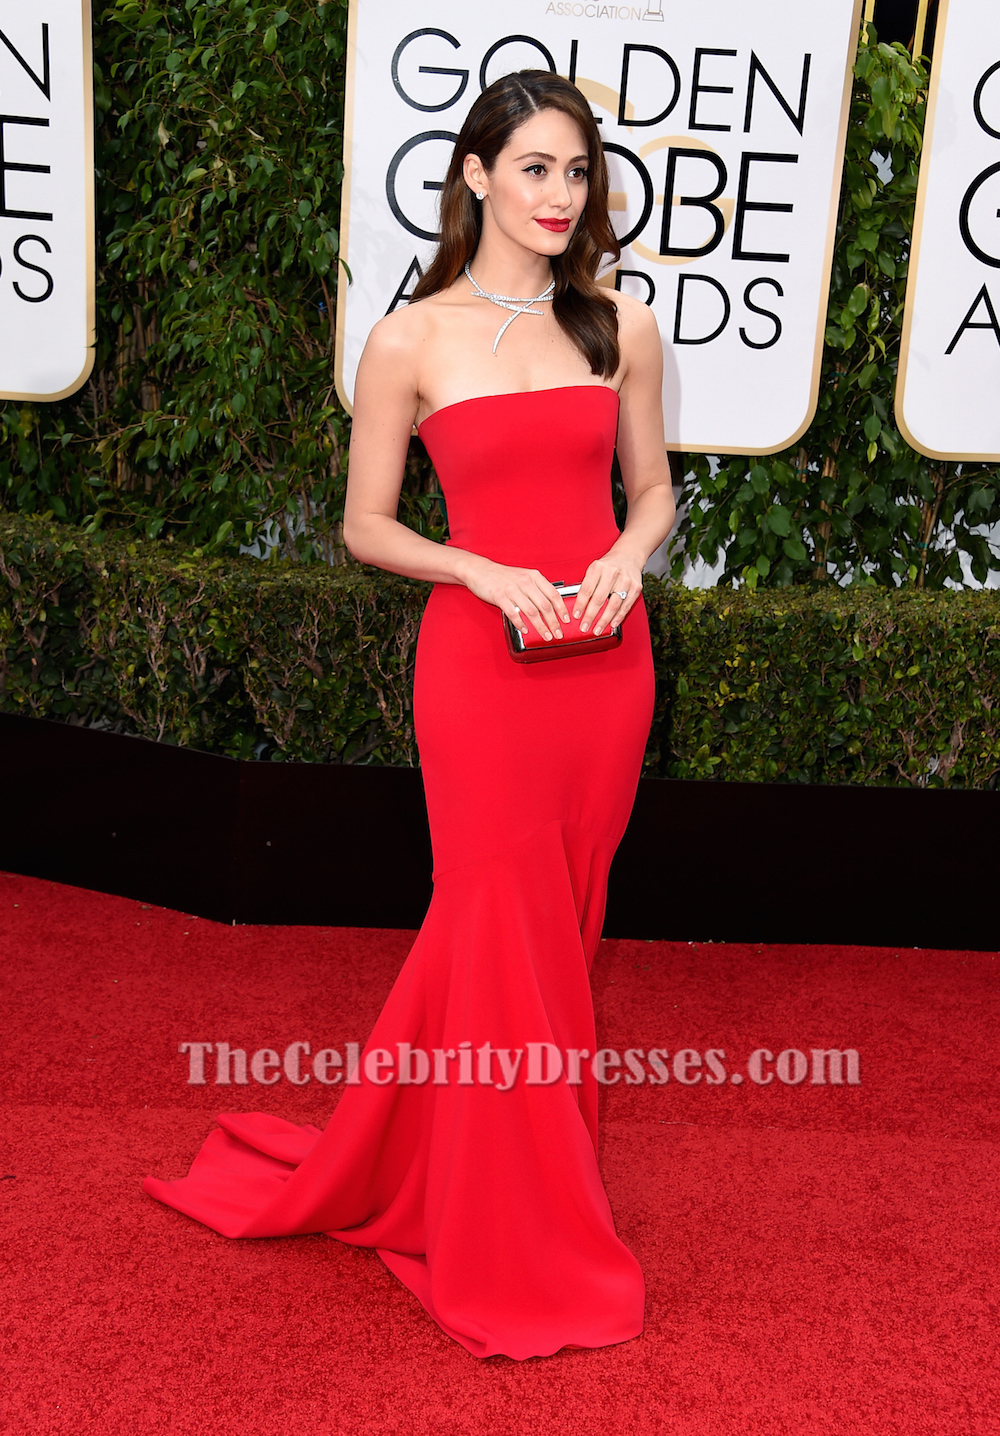 Emmy rossum red formal dress golden globes 2016 red carpet gown thecelebritydresses - Golden globes red carpet ...